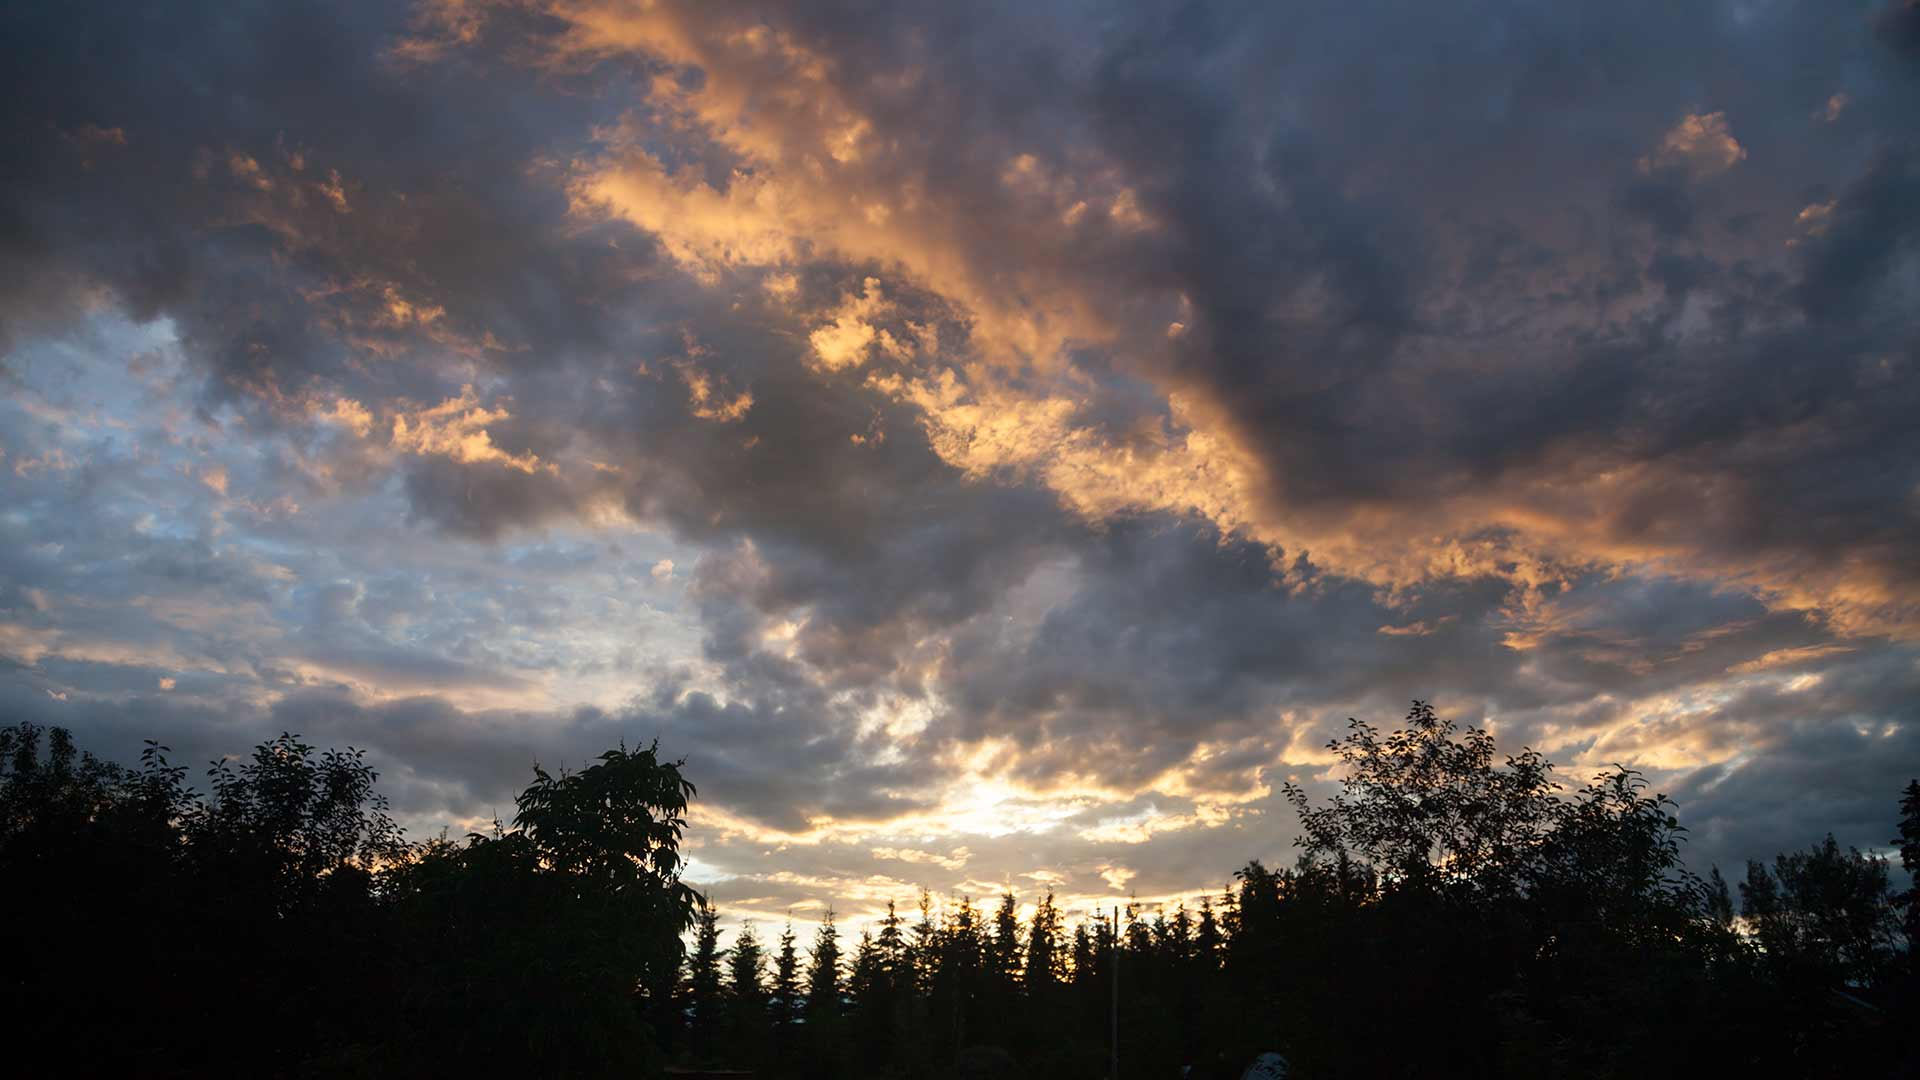 Panorama to illustrate dating in drayton valley